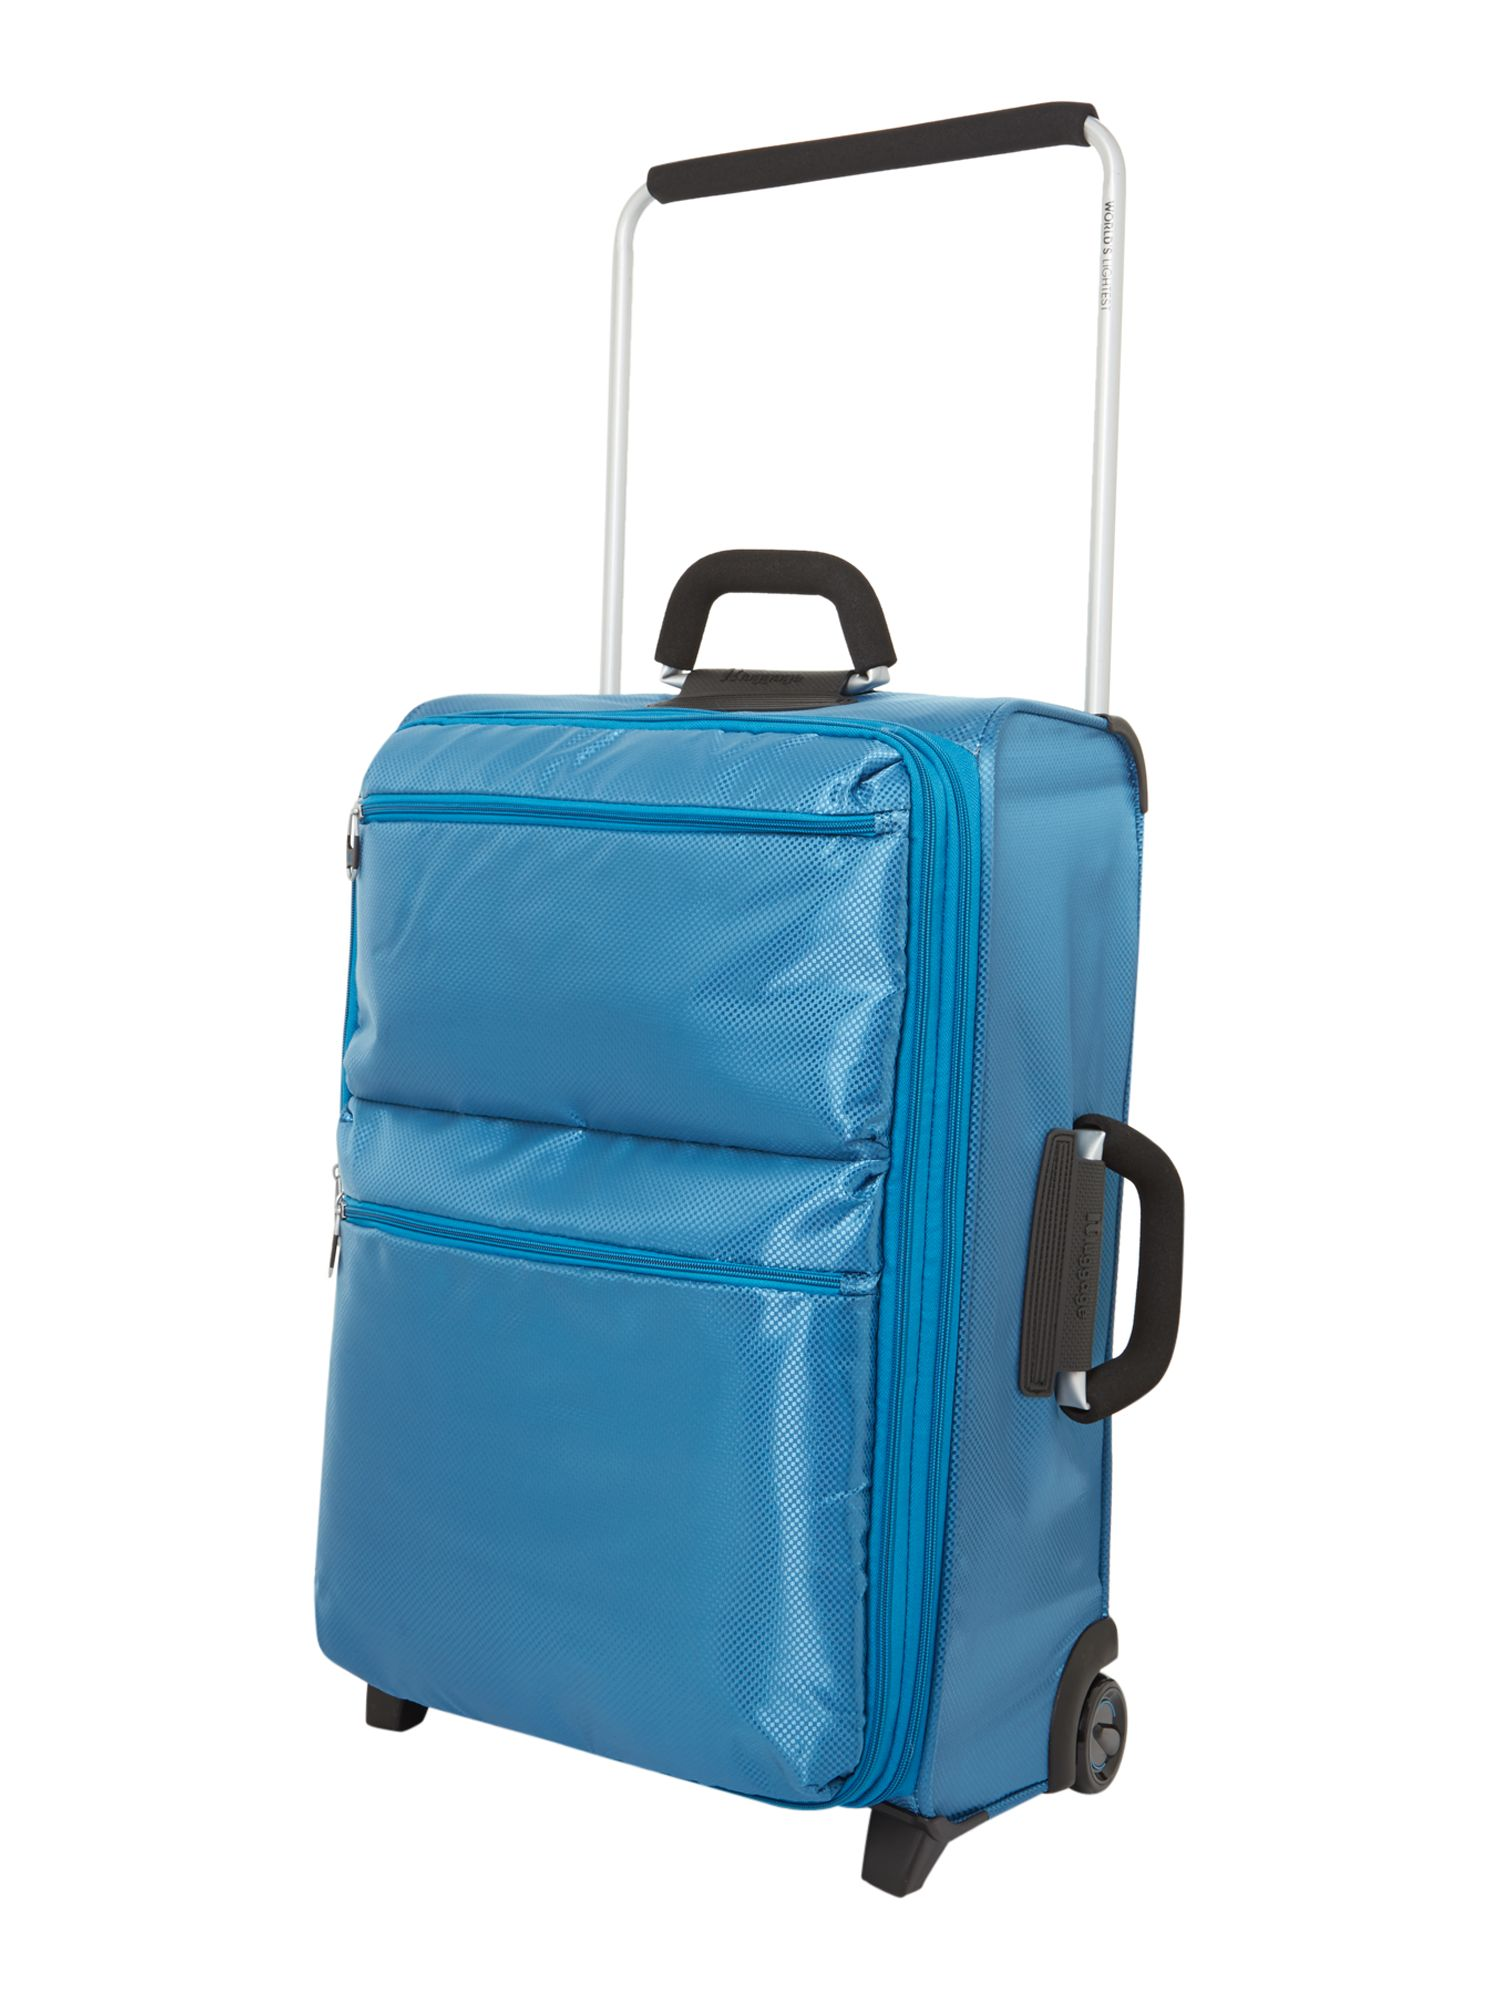 IT02 Petrol luggage range